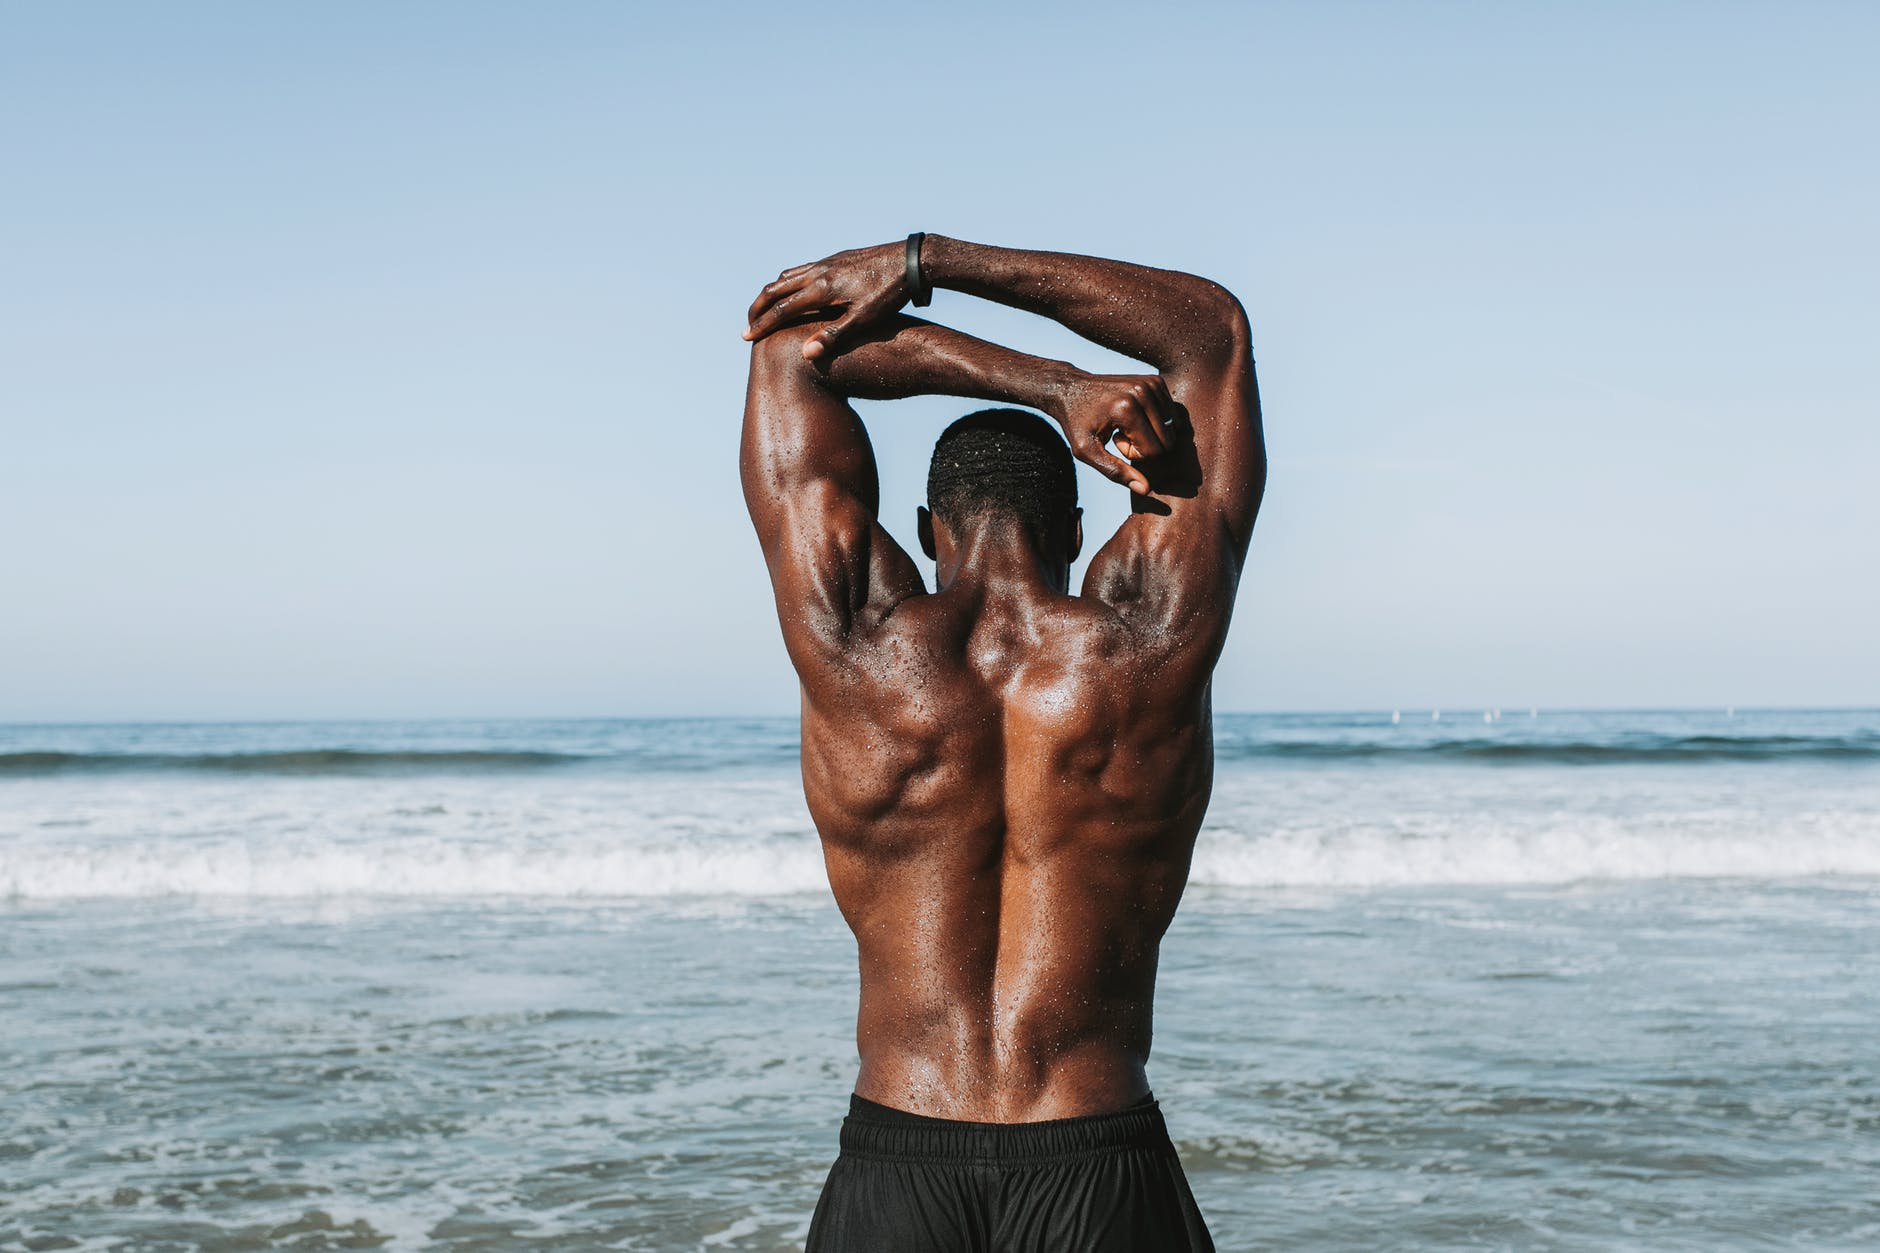 man stretching arms in front of ocean